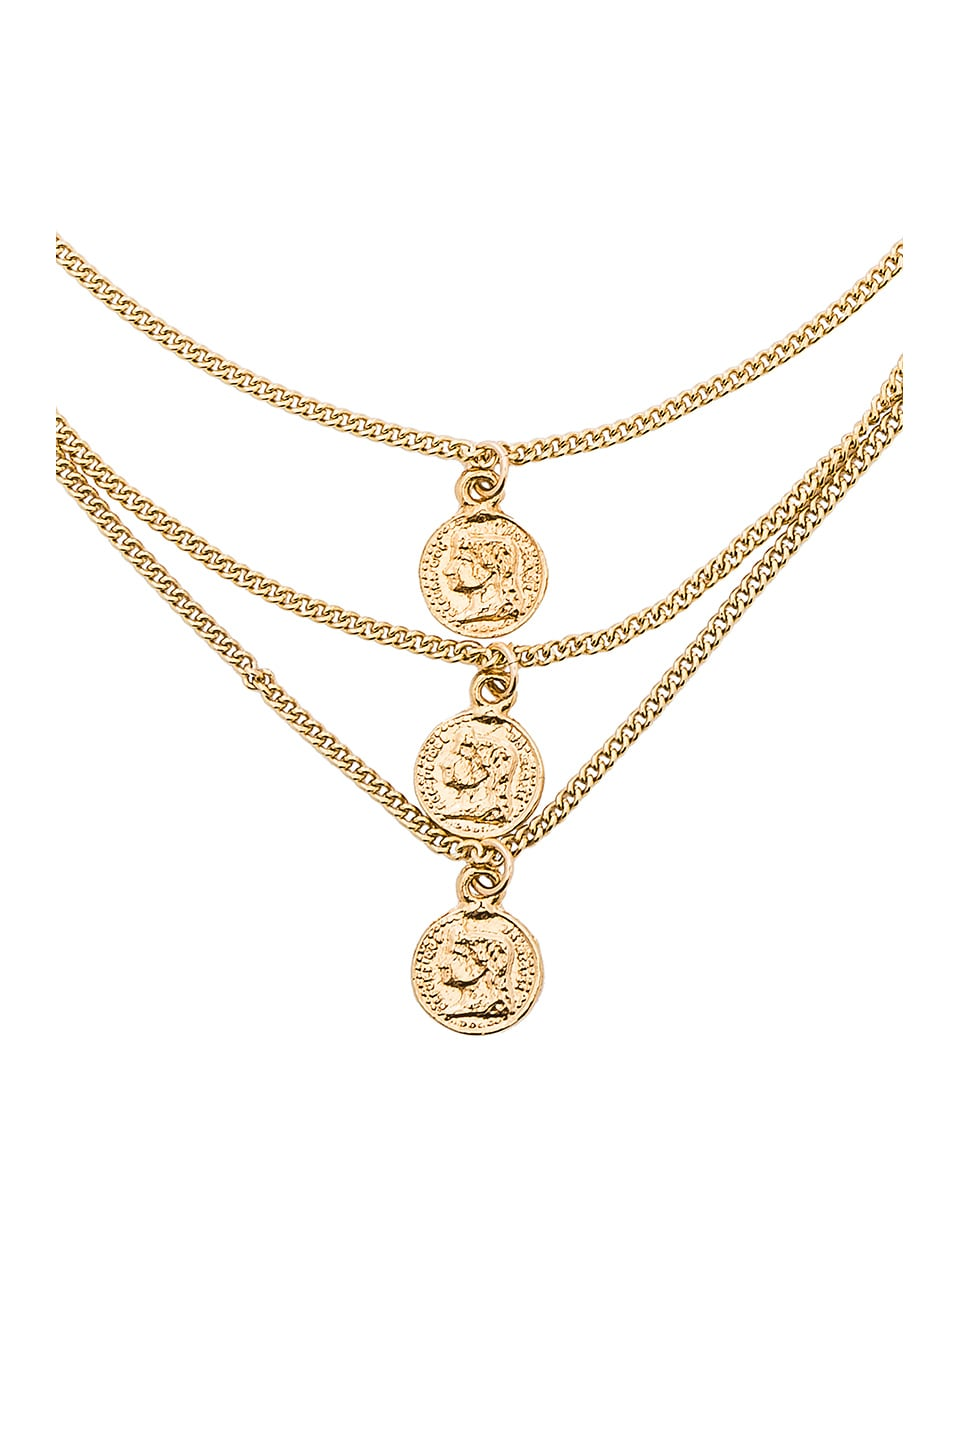 JOOLZ BY MARTHA CALVO Triple Tribute Coin Necklace in Metallic Gold